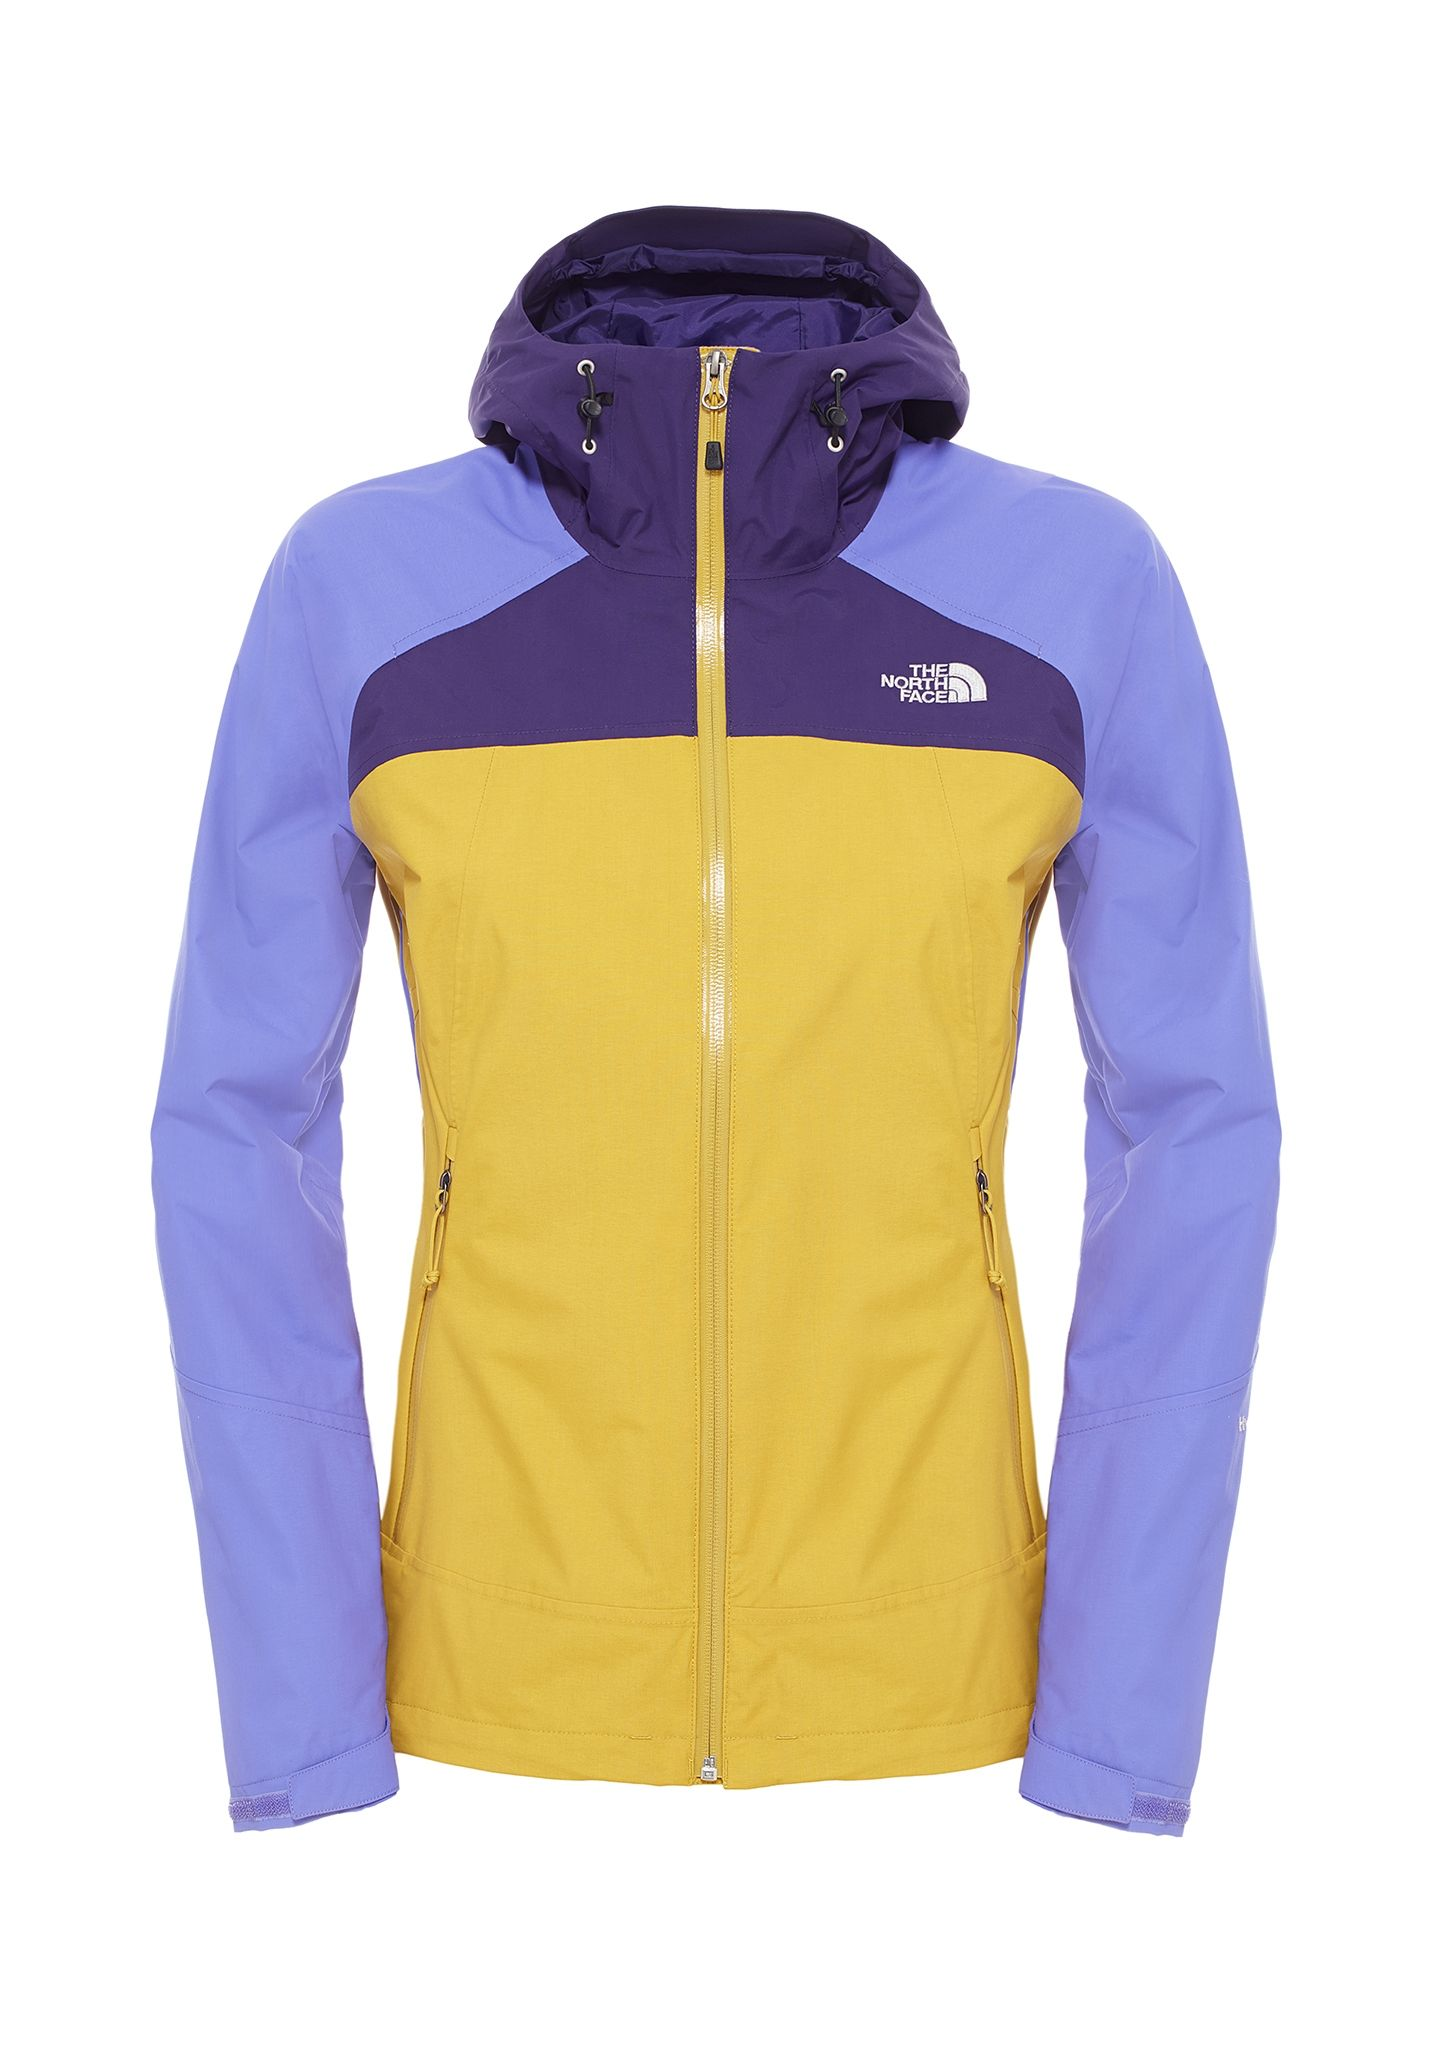 e9445640188a ... THE NORTH FACE Stratos - Functional Jacket for Women - Beige - Planet  Sports .